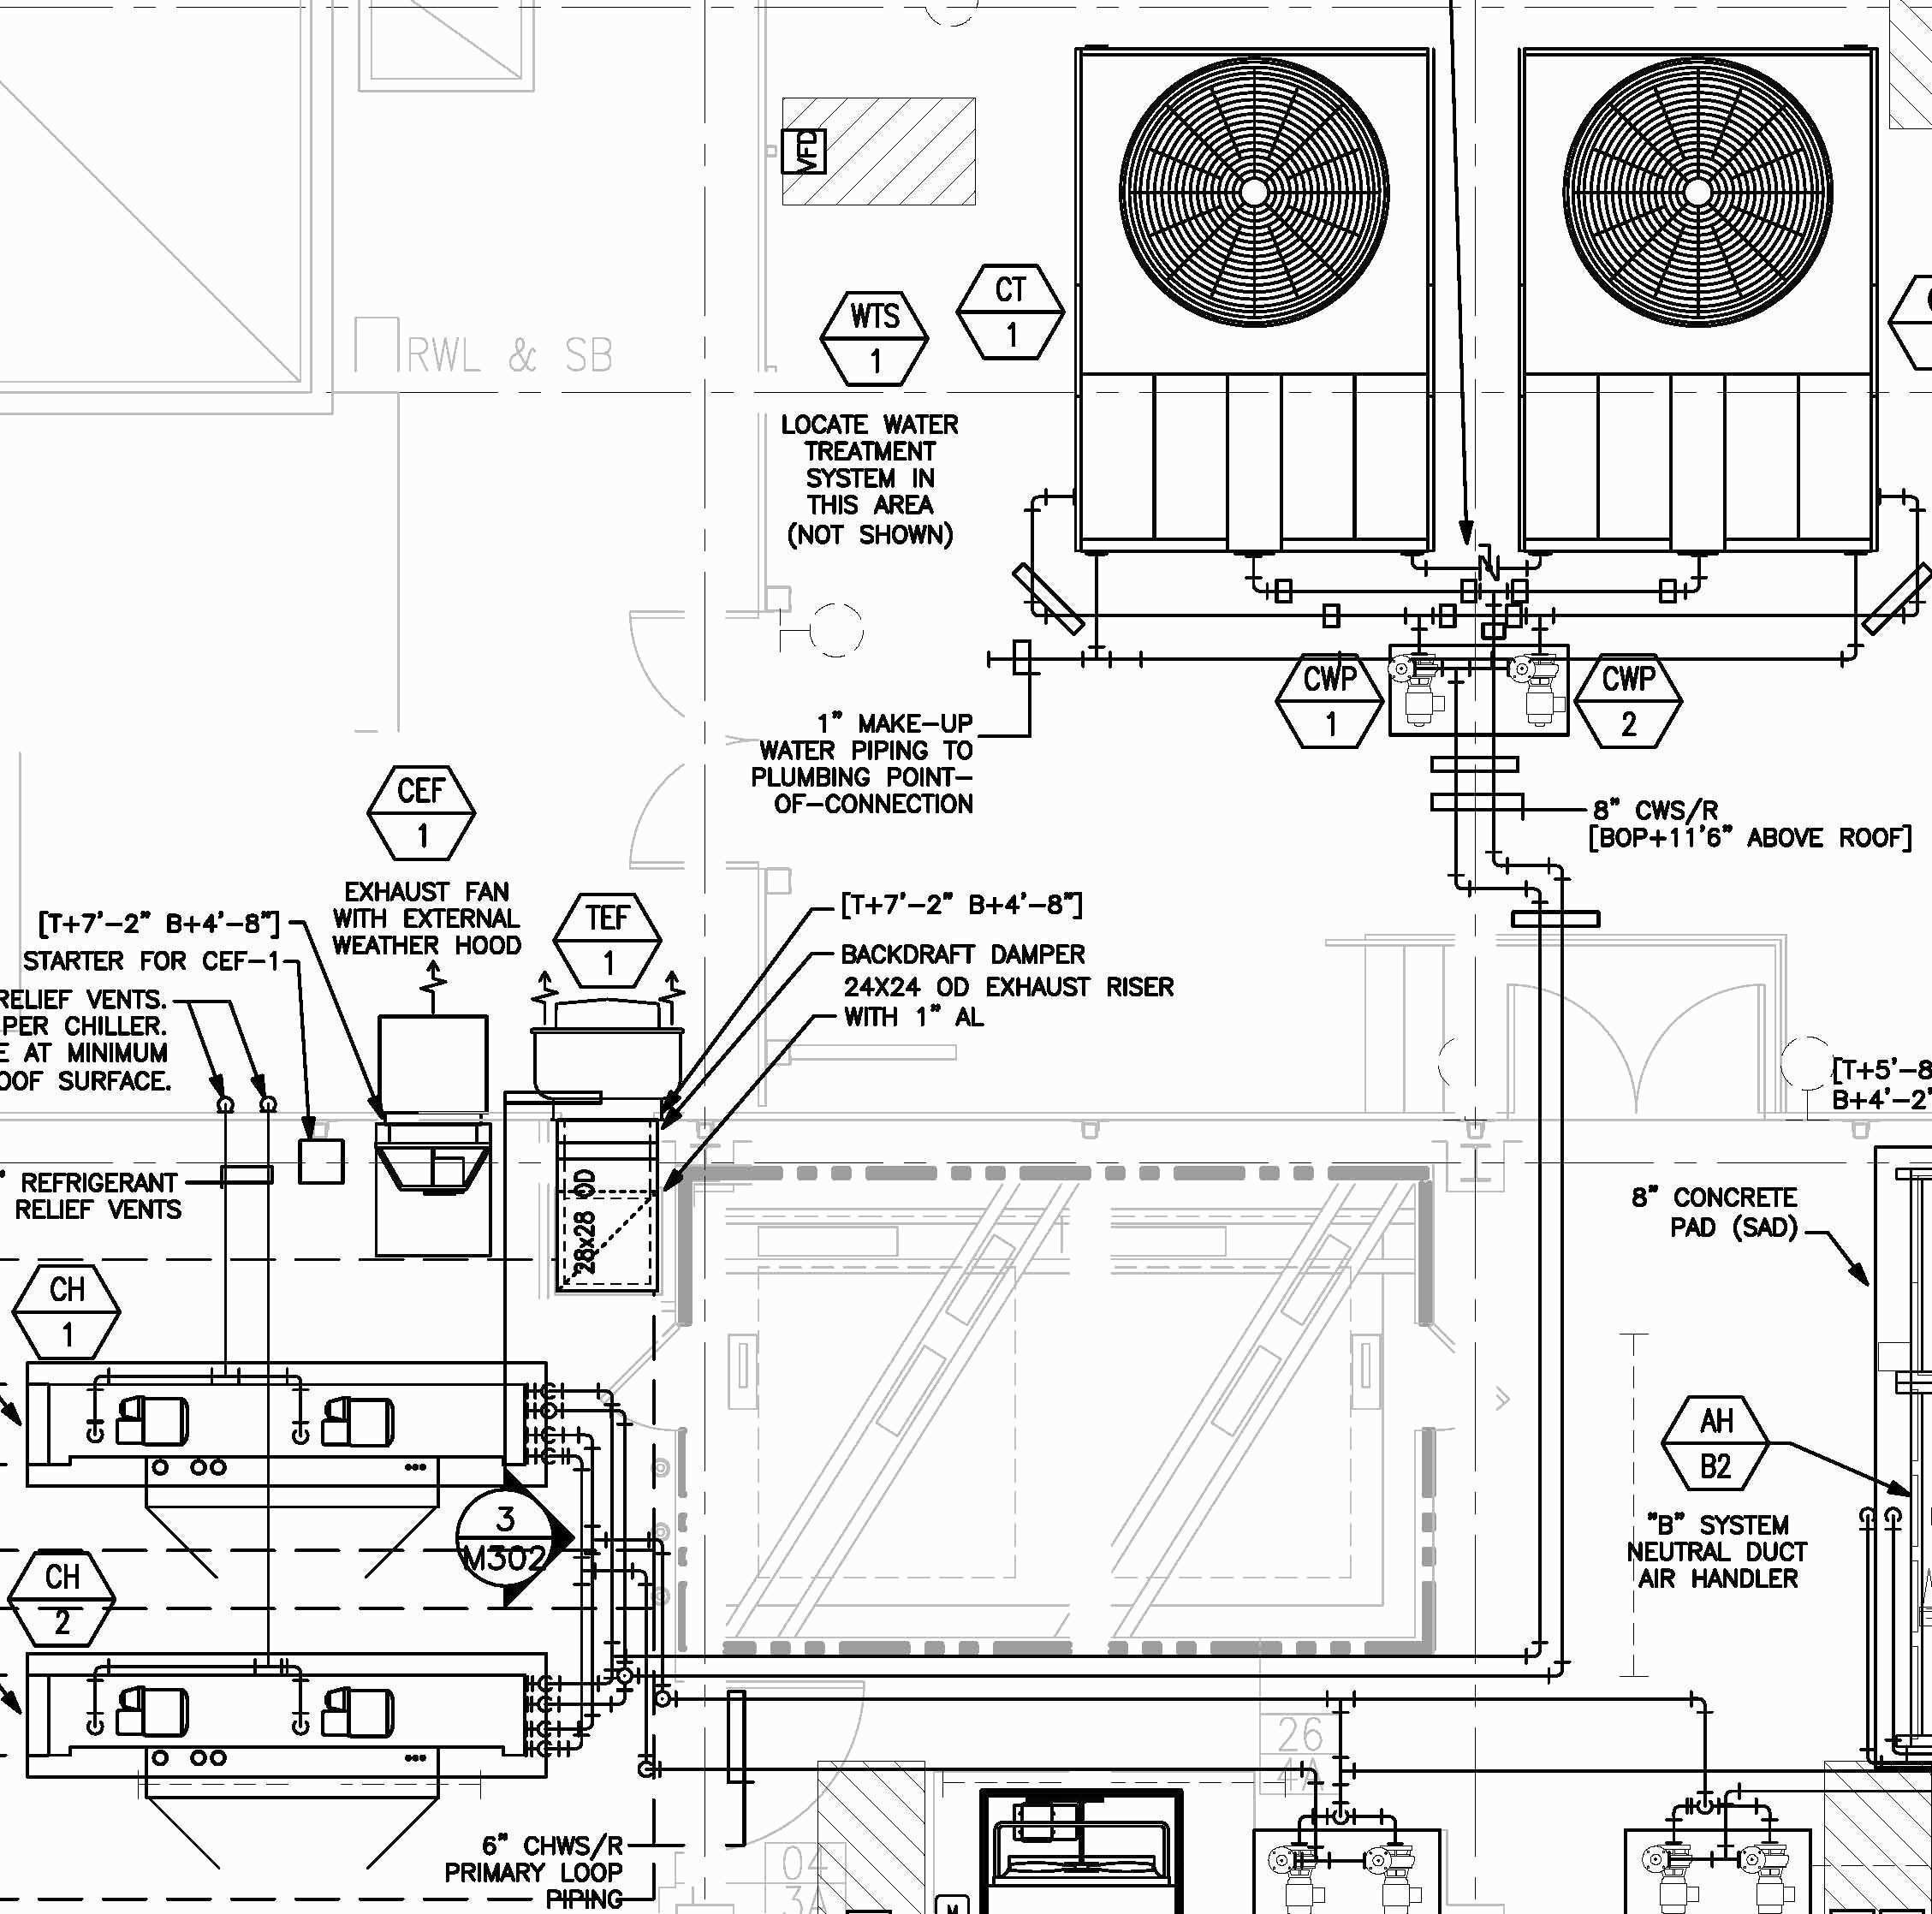 Well Pressure Switch Wiring Diagram Diagram for Square D Pressure Switch Water Pumps Electrical Diagrams Of Well Pressure Switch Wiring Diagram Ceiling Fan Wire Diagram Inspirational Ceiling Fan Light Wiring